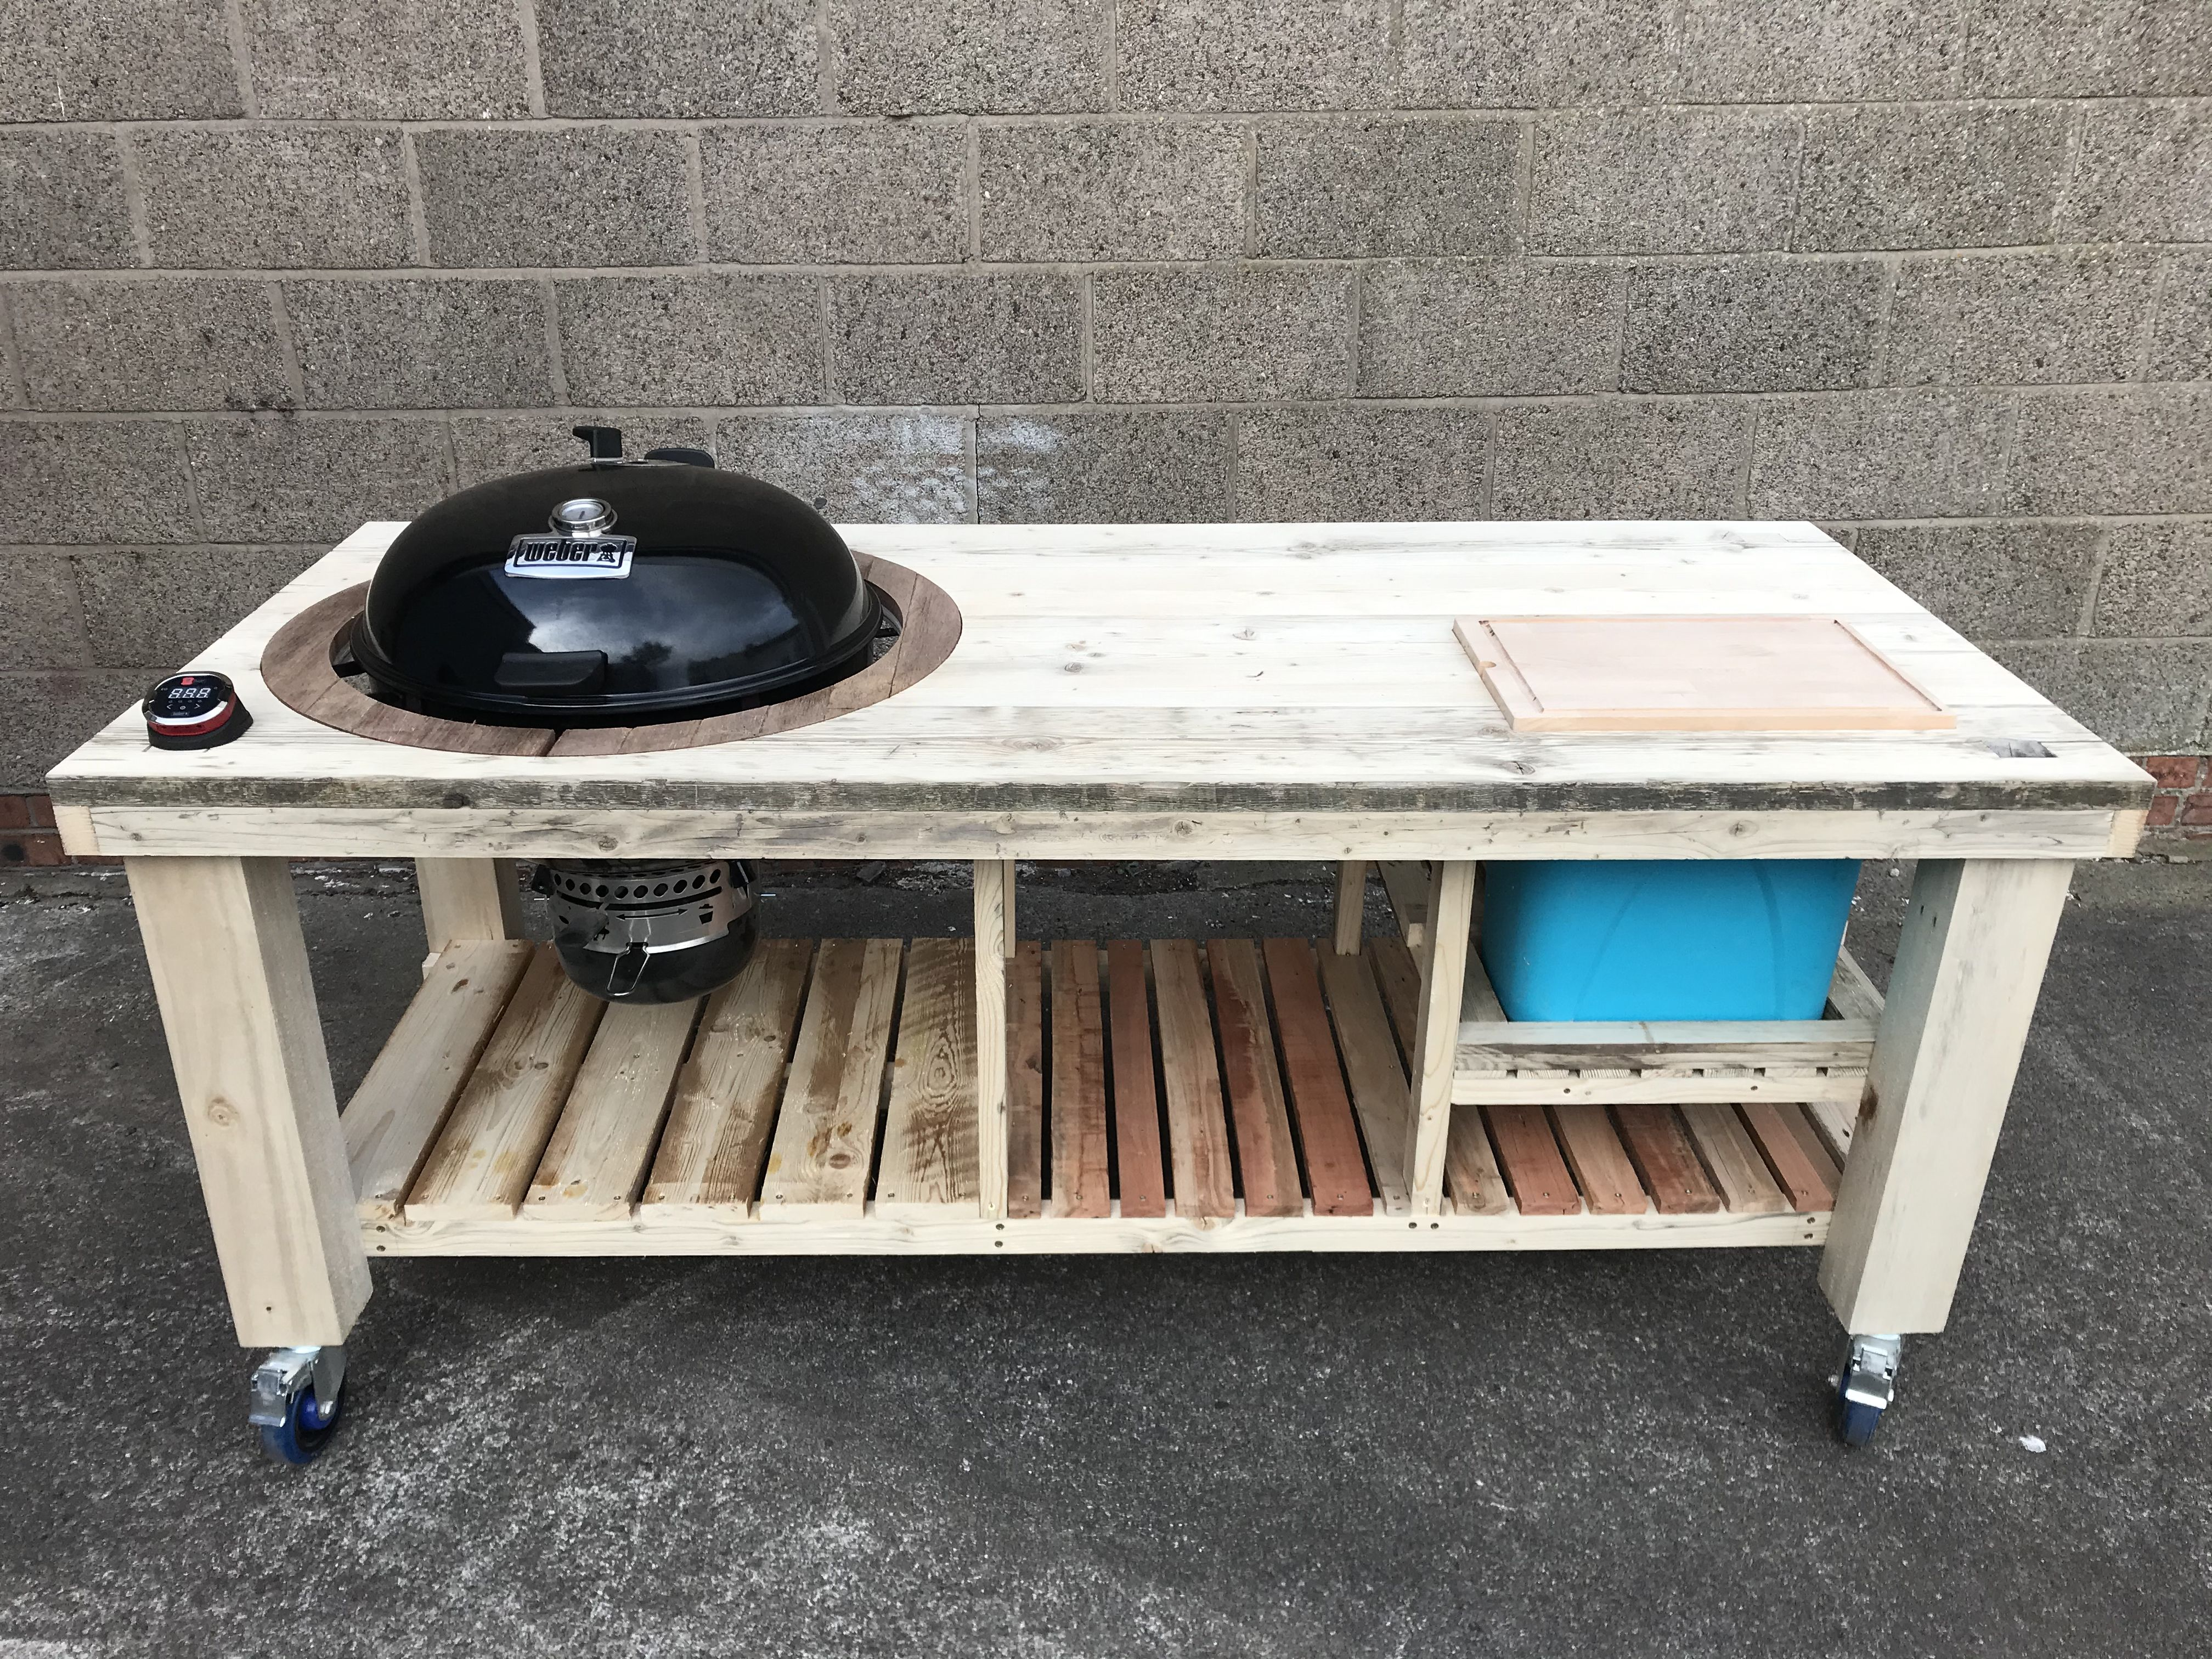 BBQ table by Armadillo Works, Fife Scotland in 2020 | Bbq ...